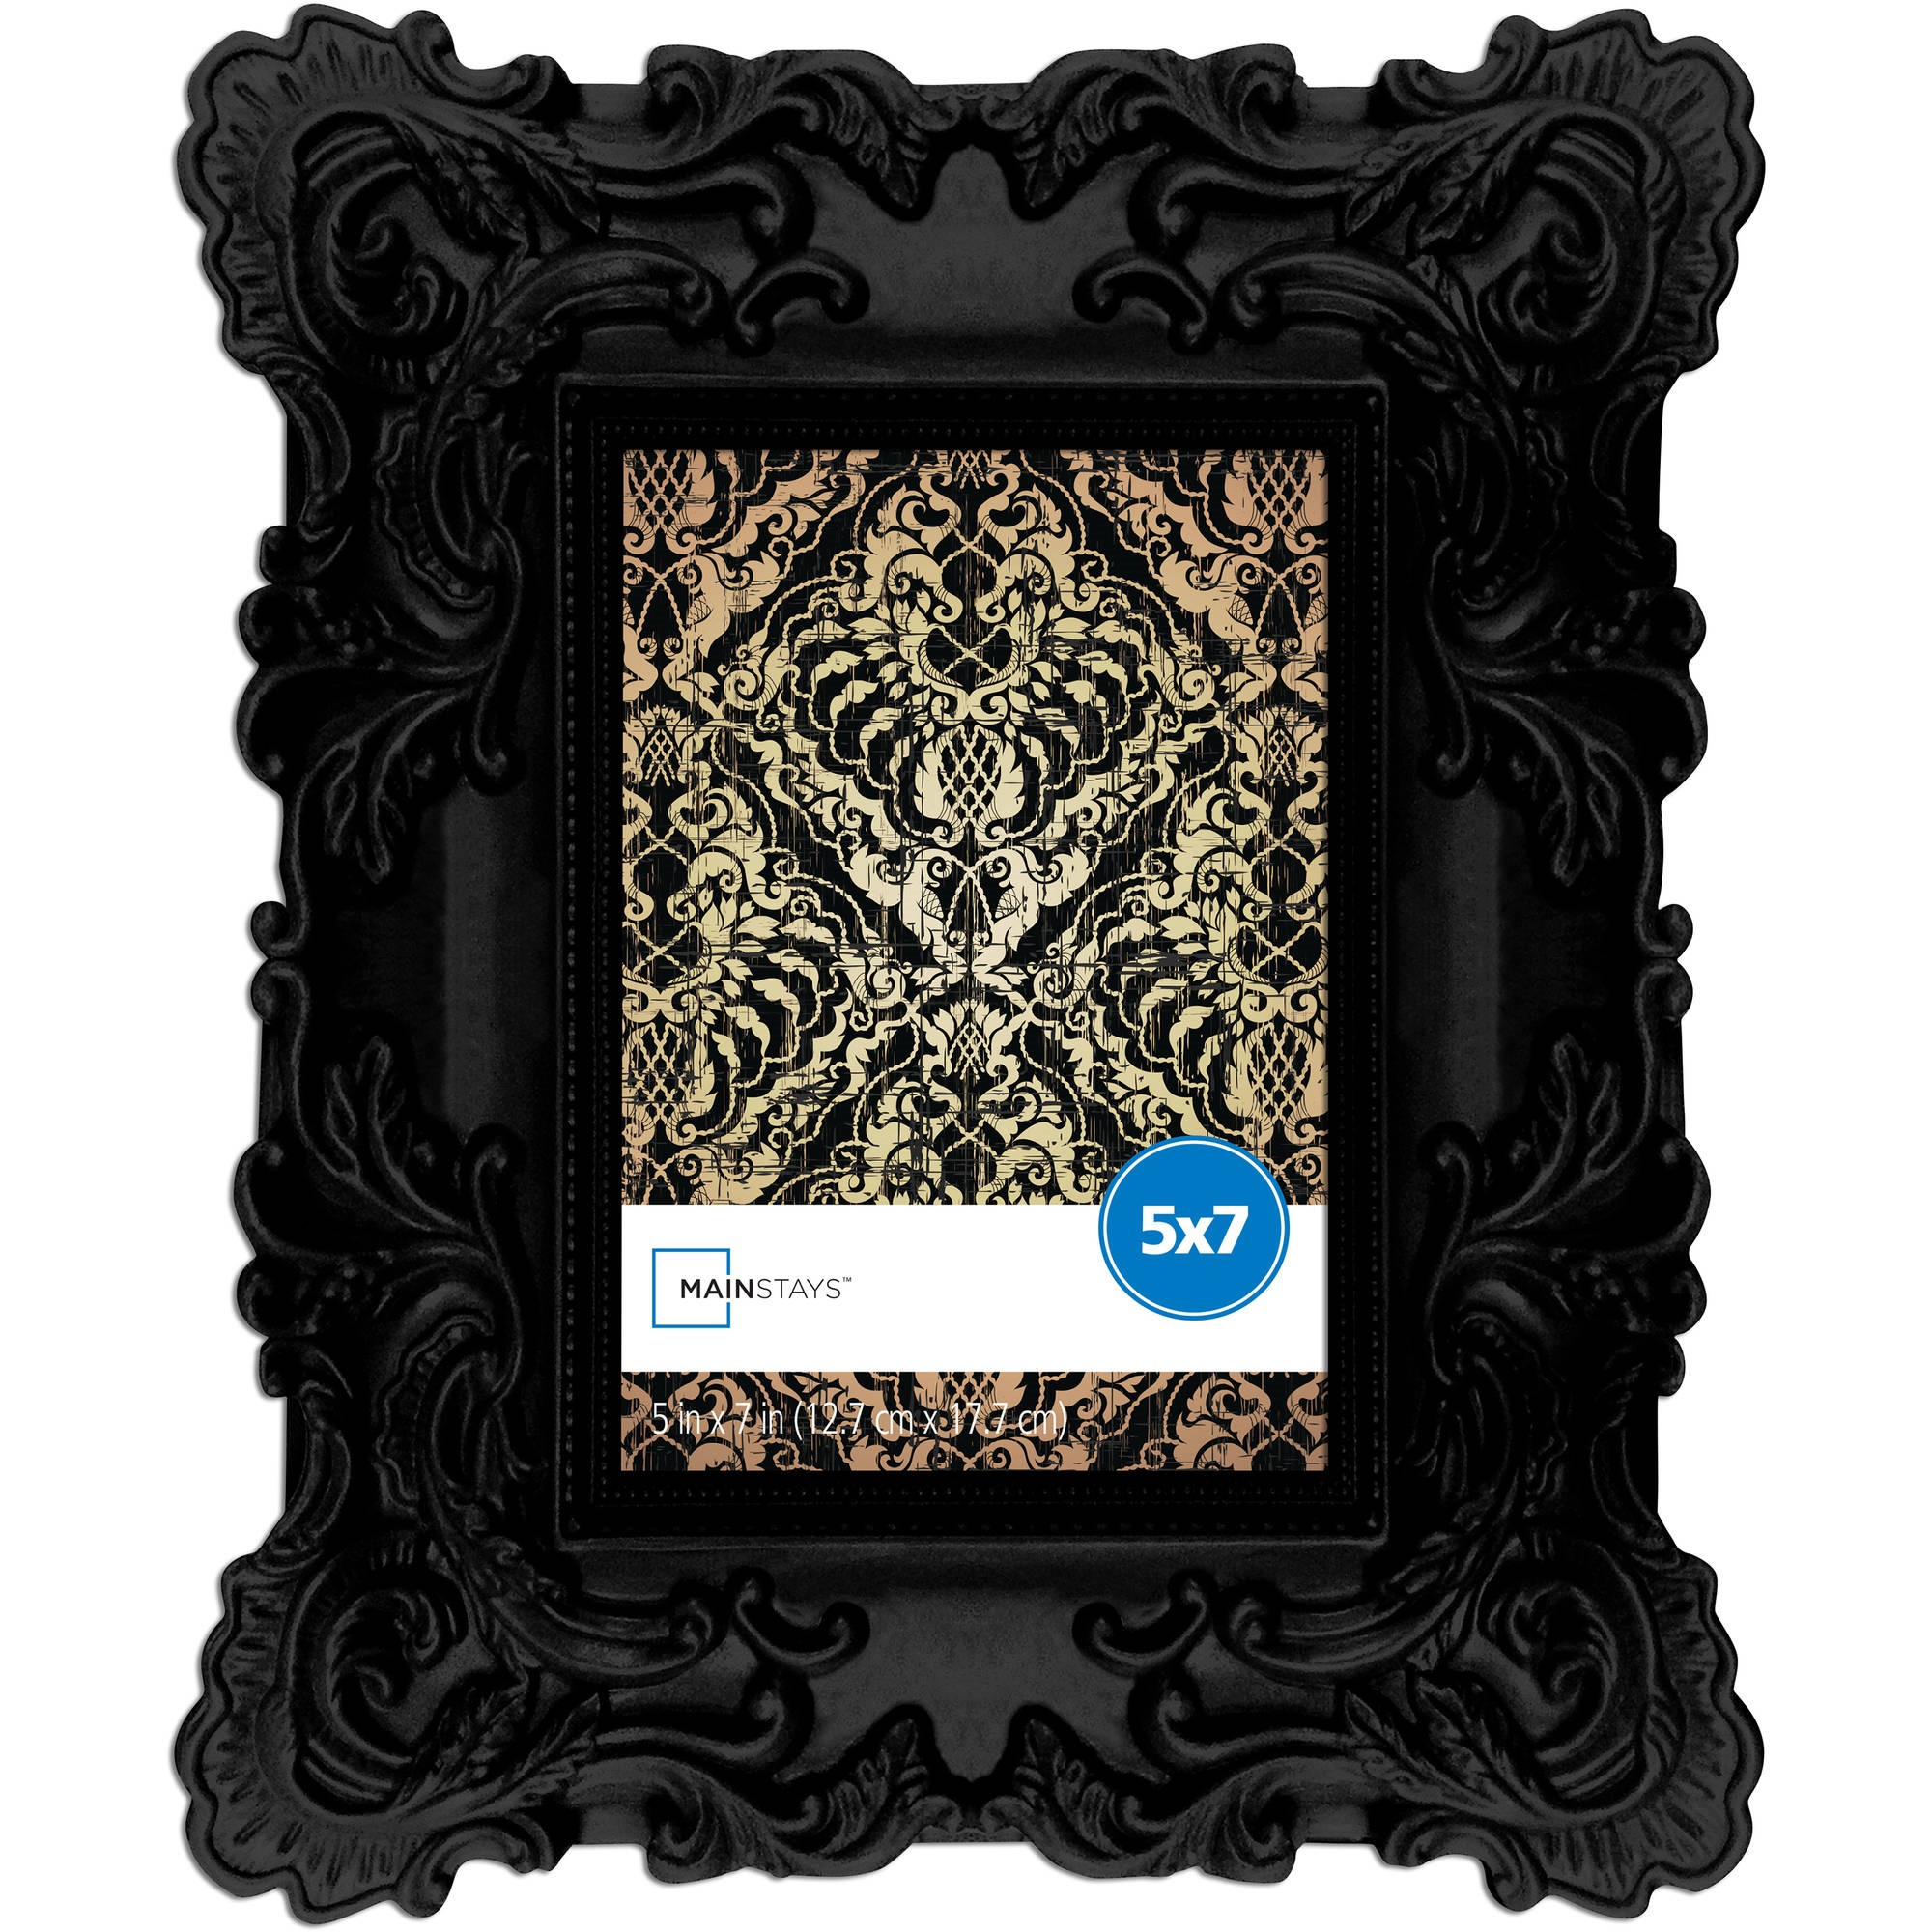 Mainstays 5x7 Chunky Baroque Picture Frame, Black by Uniek